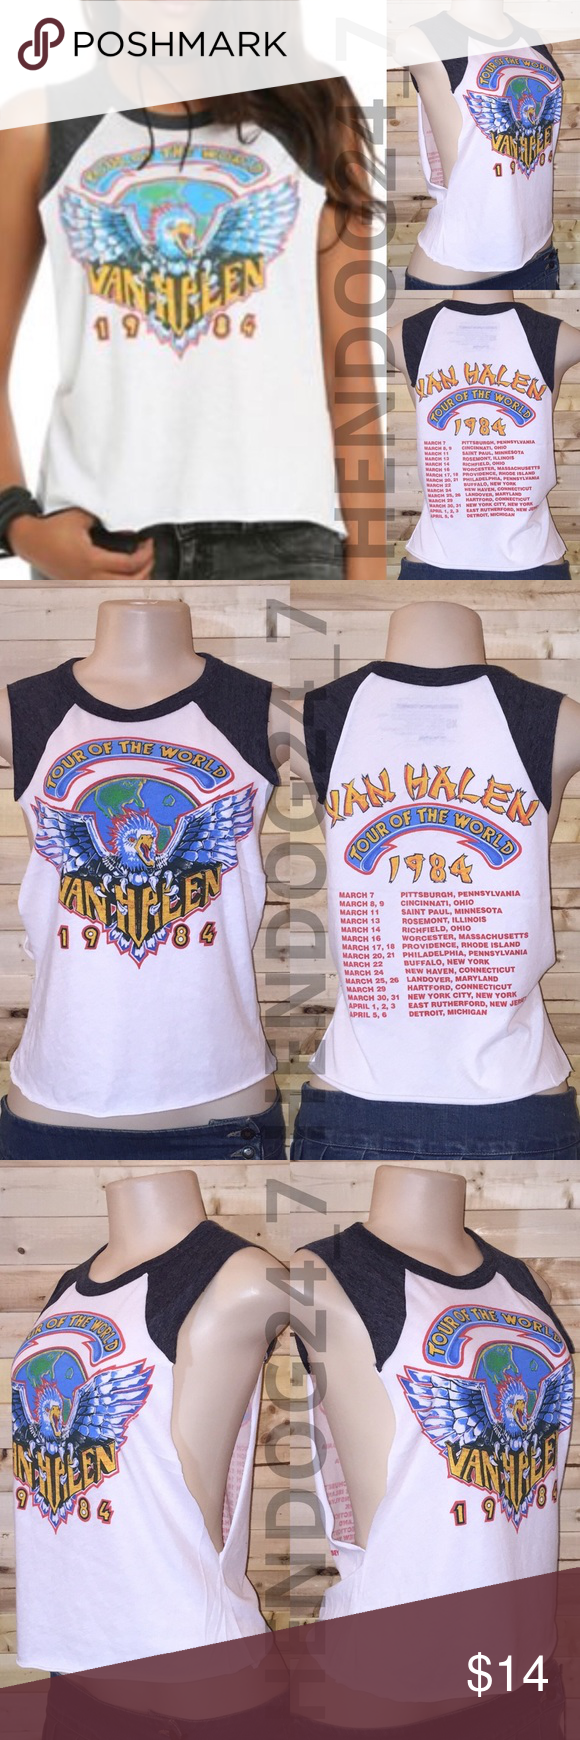 HOT TOPIC VAN HALEN EAGLE 1984 WOMEN'S MUSCLE TEE NEW WITHOUT TAGS - NEVER WORN - OVERSTOCK ITEM - LINE THROUGH BRAND  LABEL  HOT TOPIC VAN HALEN EAGLE 1984 WOMEN'S MUSCLE TEE -ROUGH HEMS  -SIZE X-SMALL -BRAND: LIVE NATION MERCHANDISE -COLOR: WHITE FRONT, HEATHER CHARCOAL TEE, MULTI COLOR GRAPHIC -RIBBED CREW NECK -SLEEVELESS TANK TOP -ROUGH UNFINISHED HEMS -MATERIAL: 50% POLYESTER, 37% COTTON, 13% RAYON -MACHINE WASH COLD -MADE IN GUATEMALA Hot Topic Tops Muscle Tees